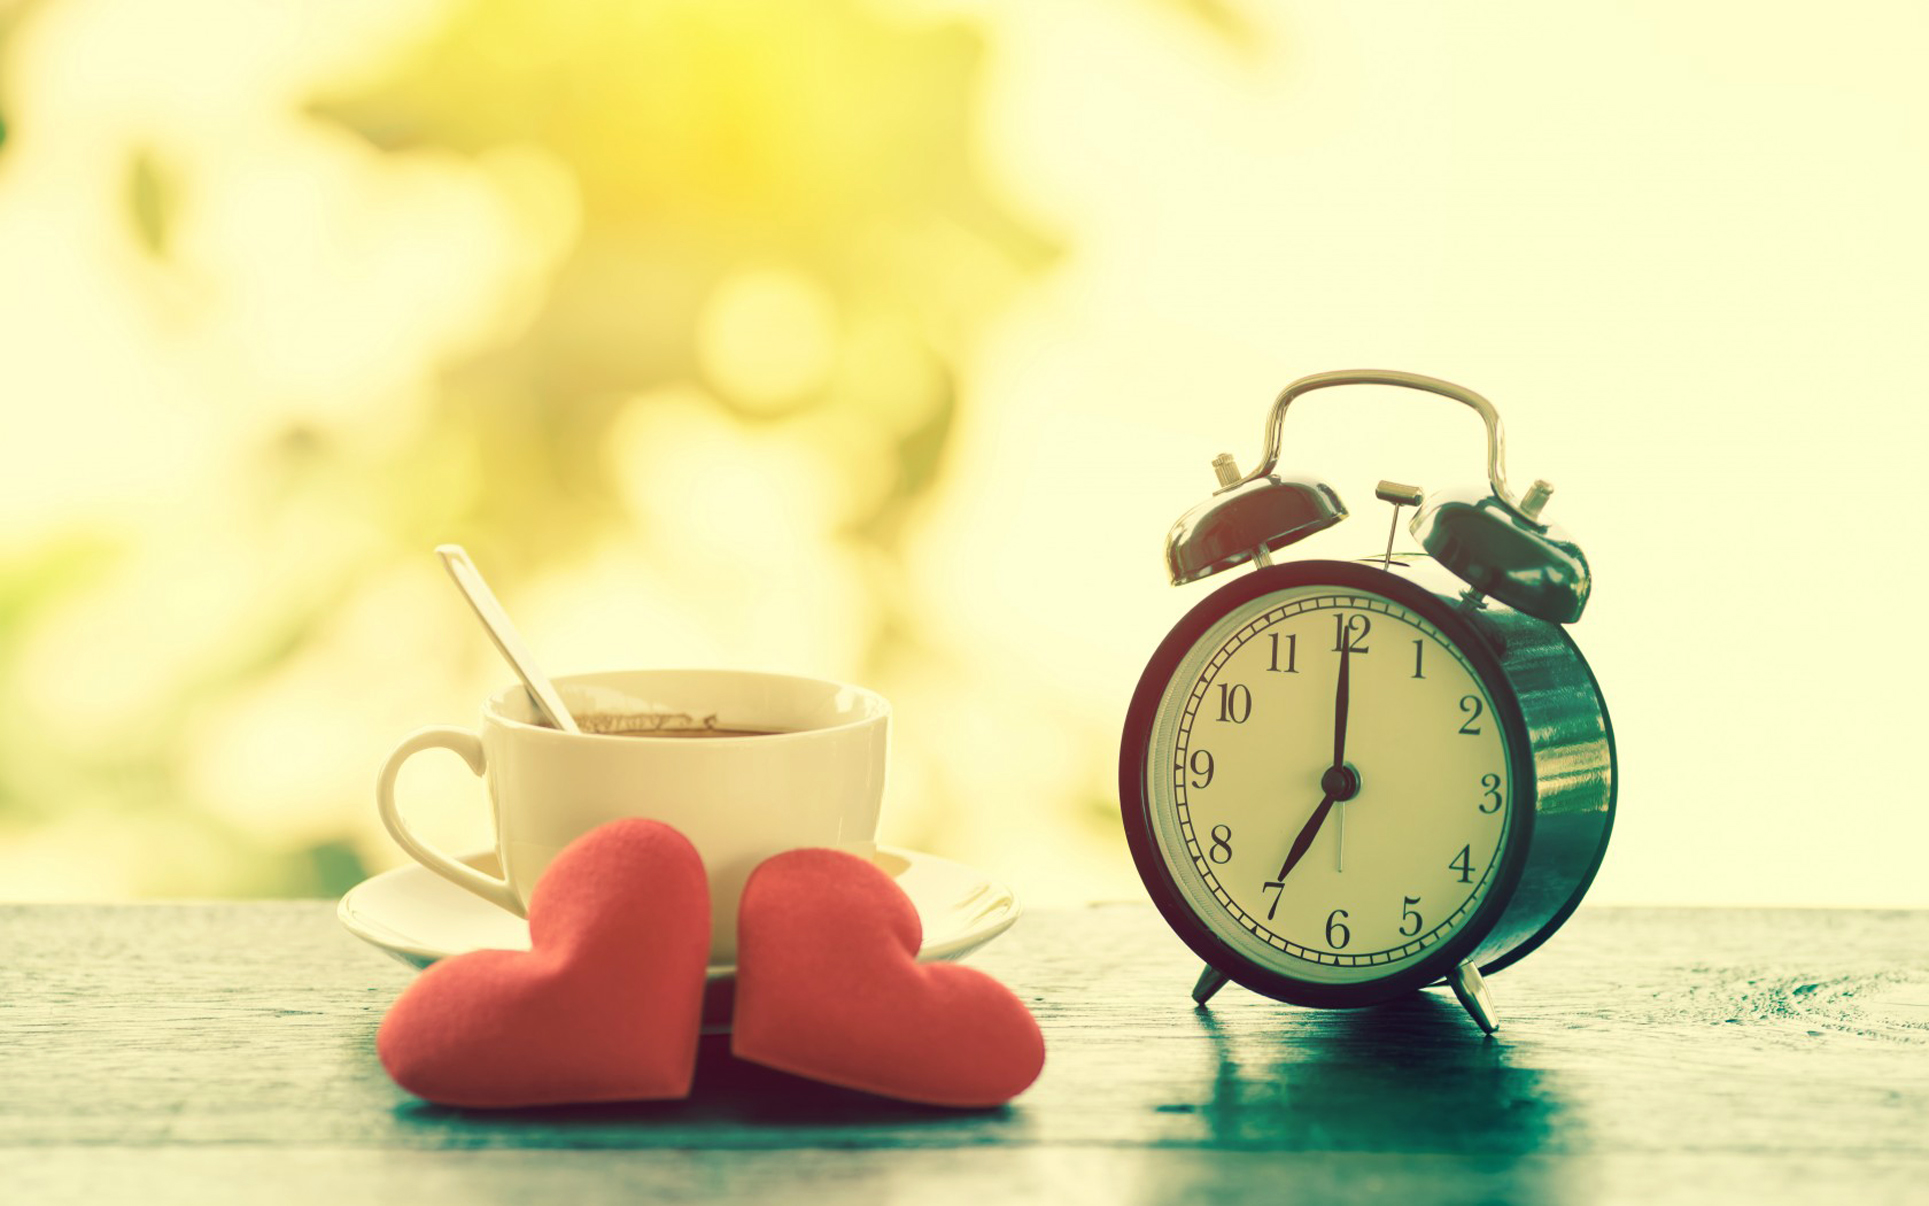 Coffee Cup Red Hearts Analog Alarm Clock HD Wallpaper - Canada Life